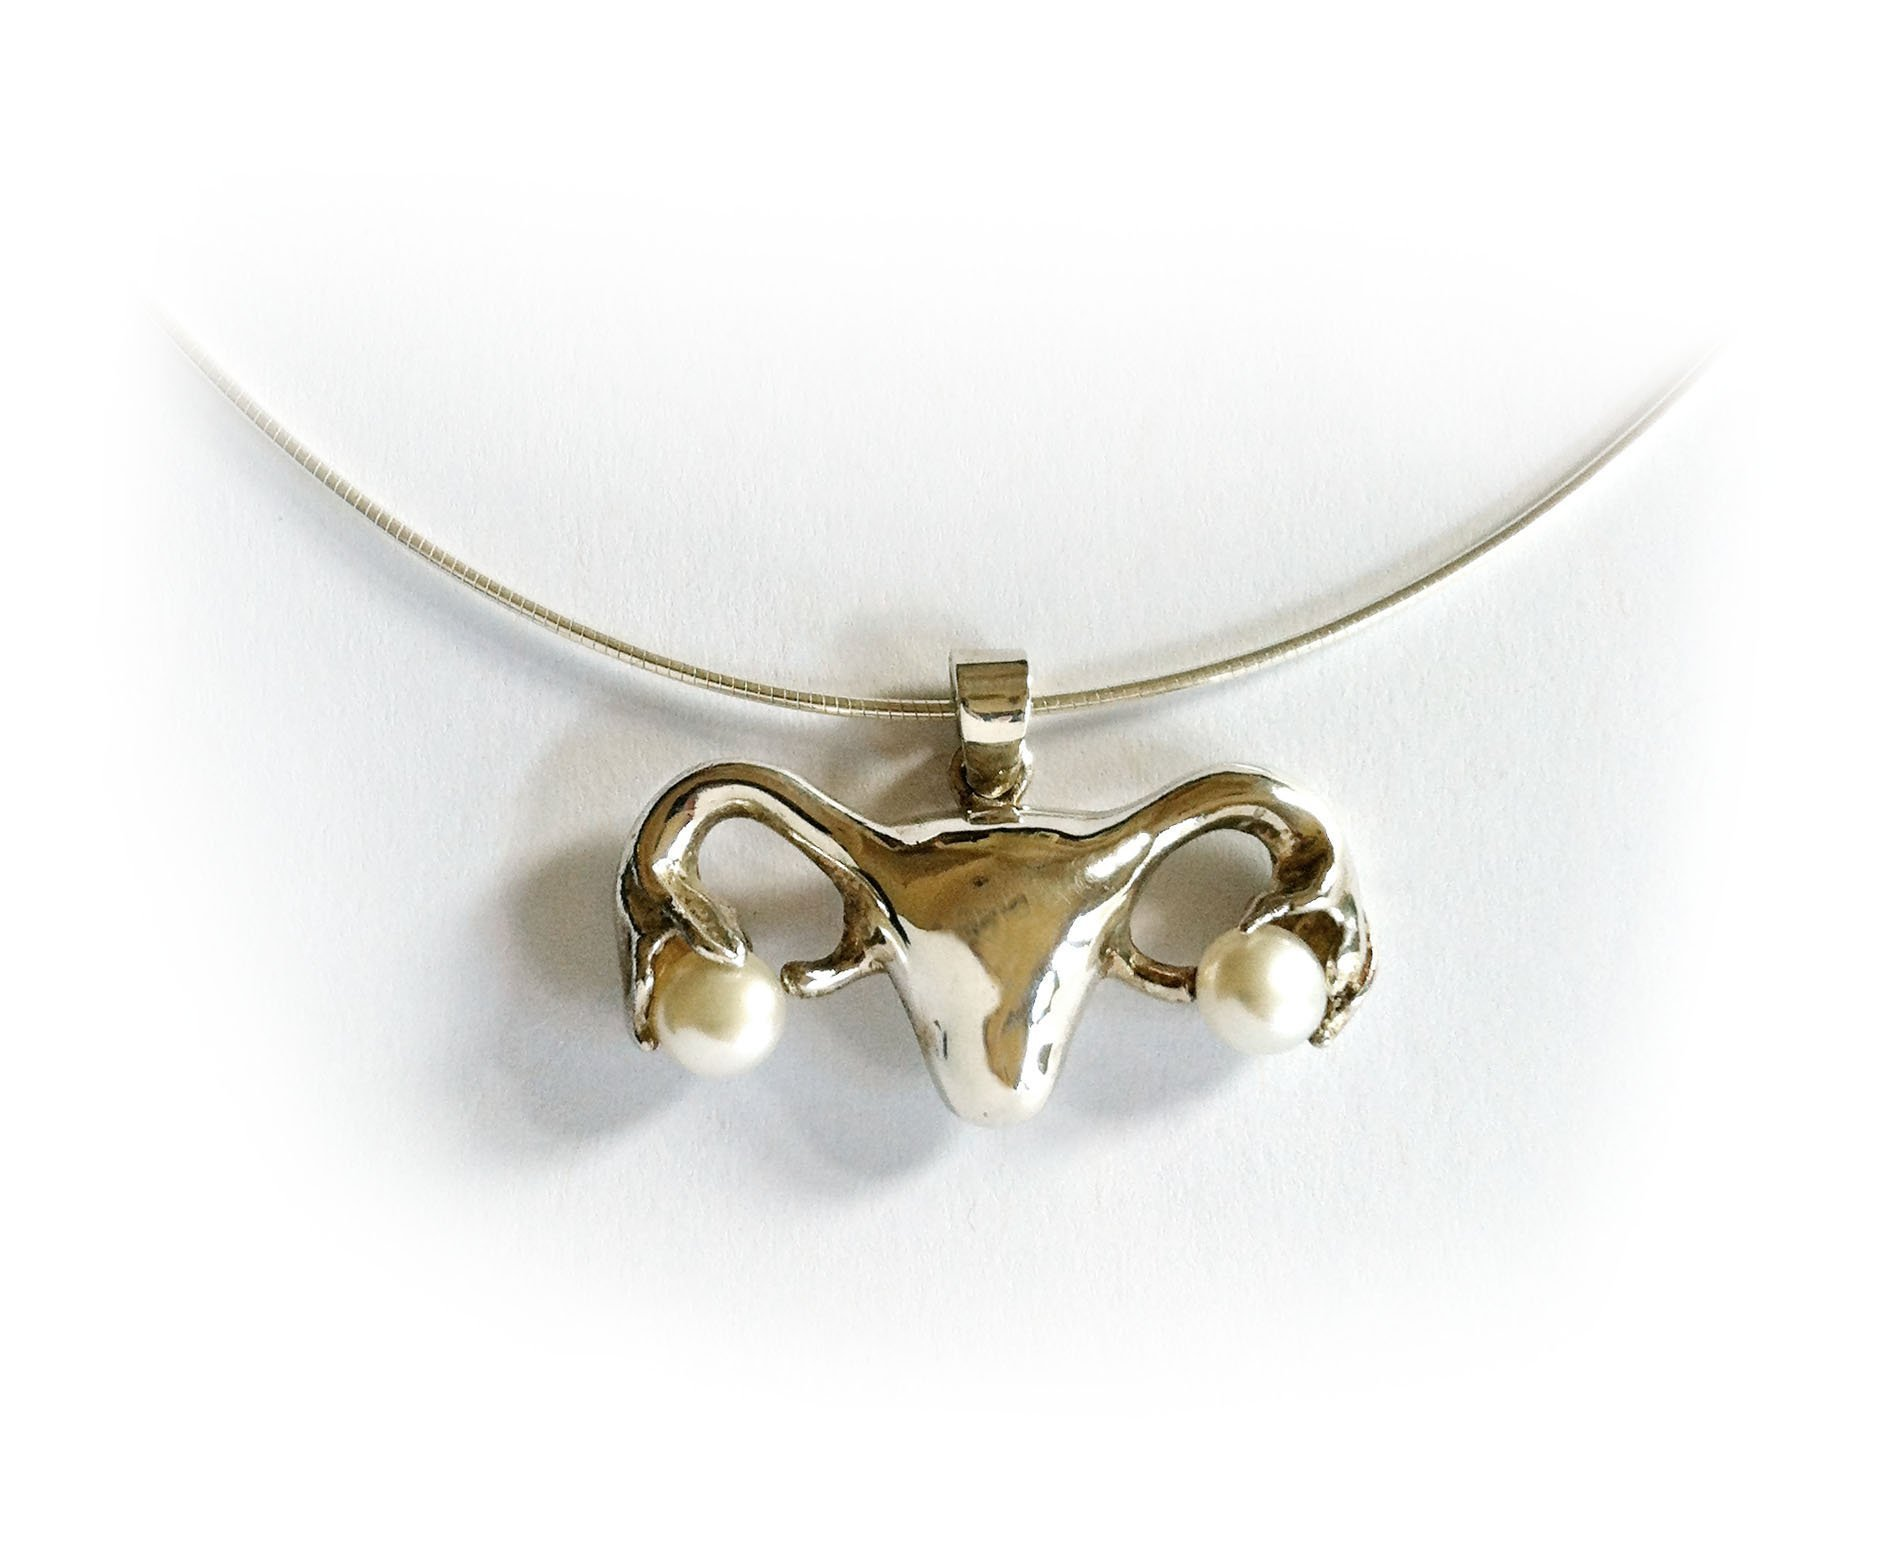 Uterus Necklace in Silver and Pearls